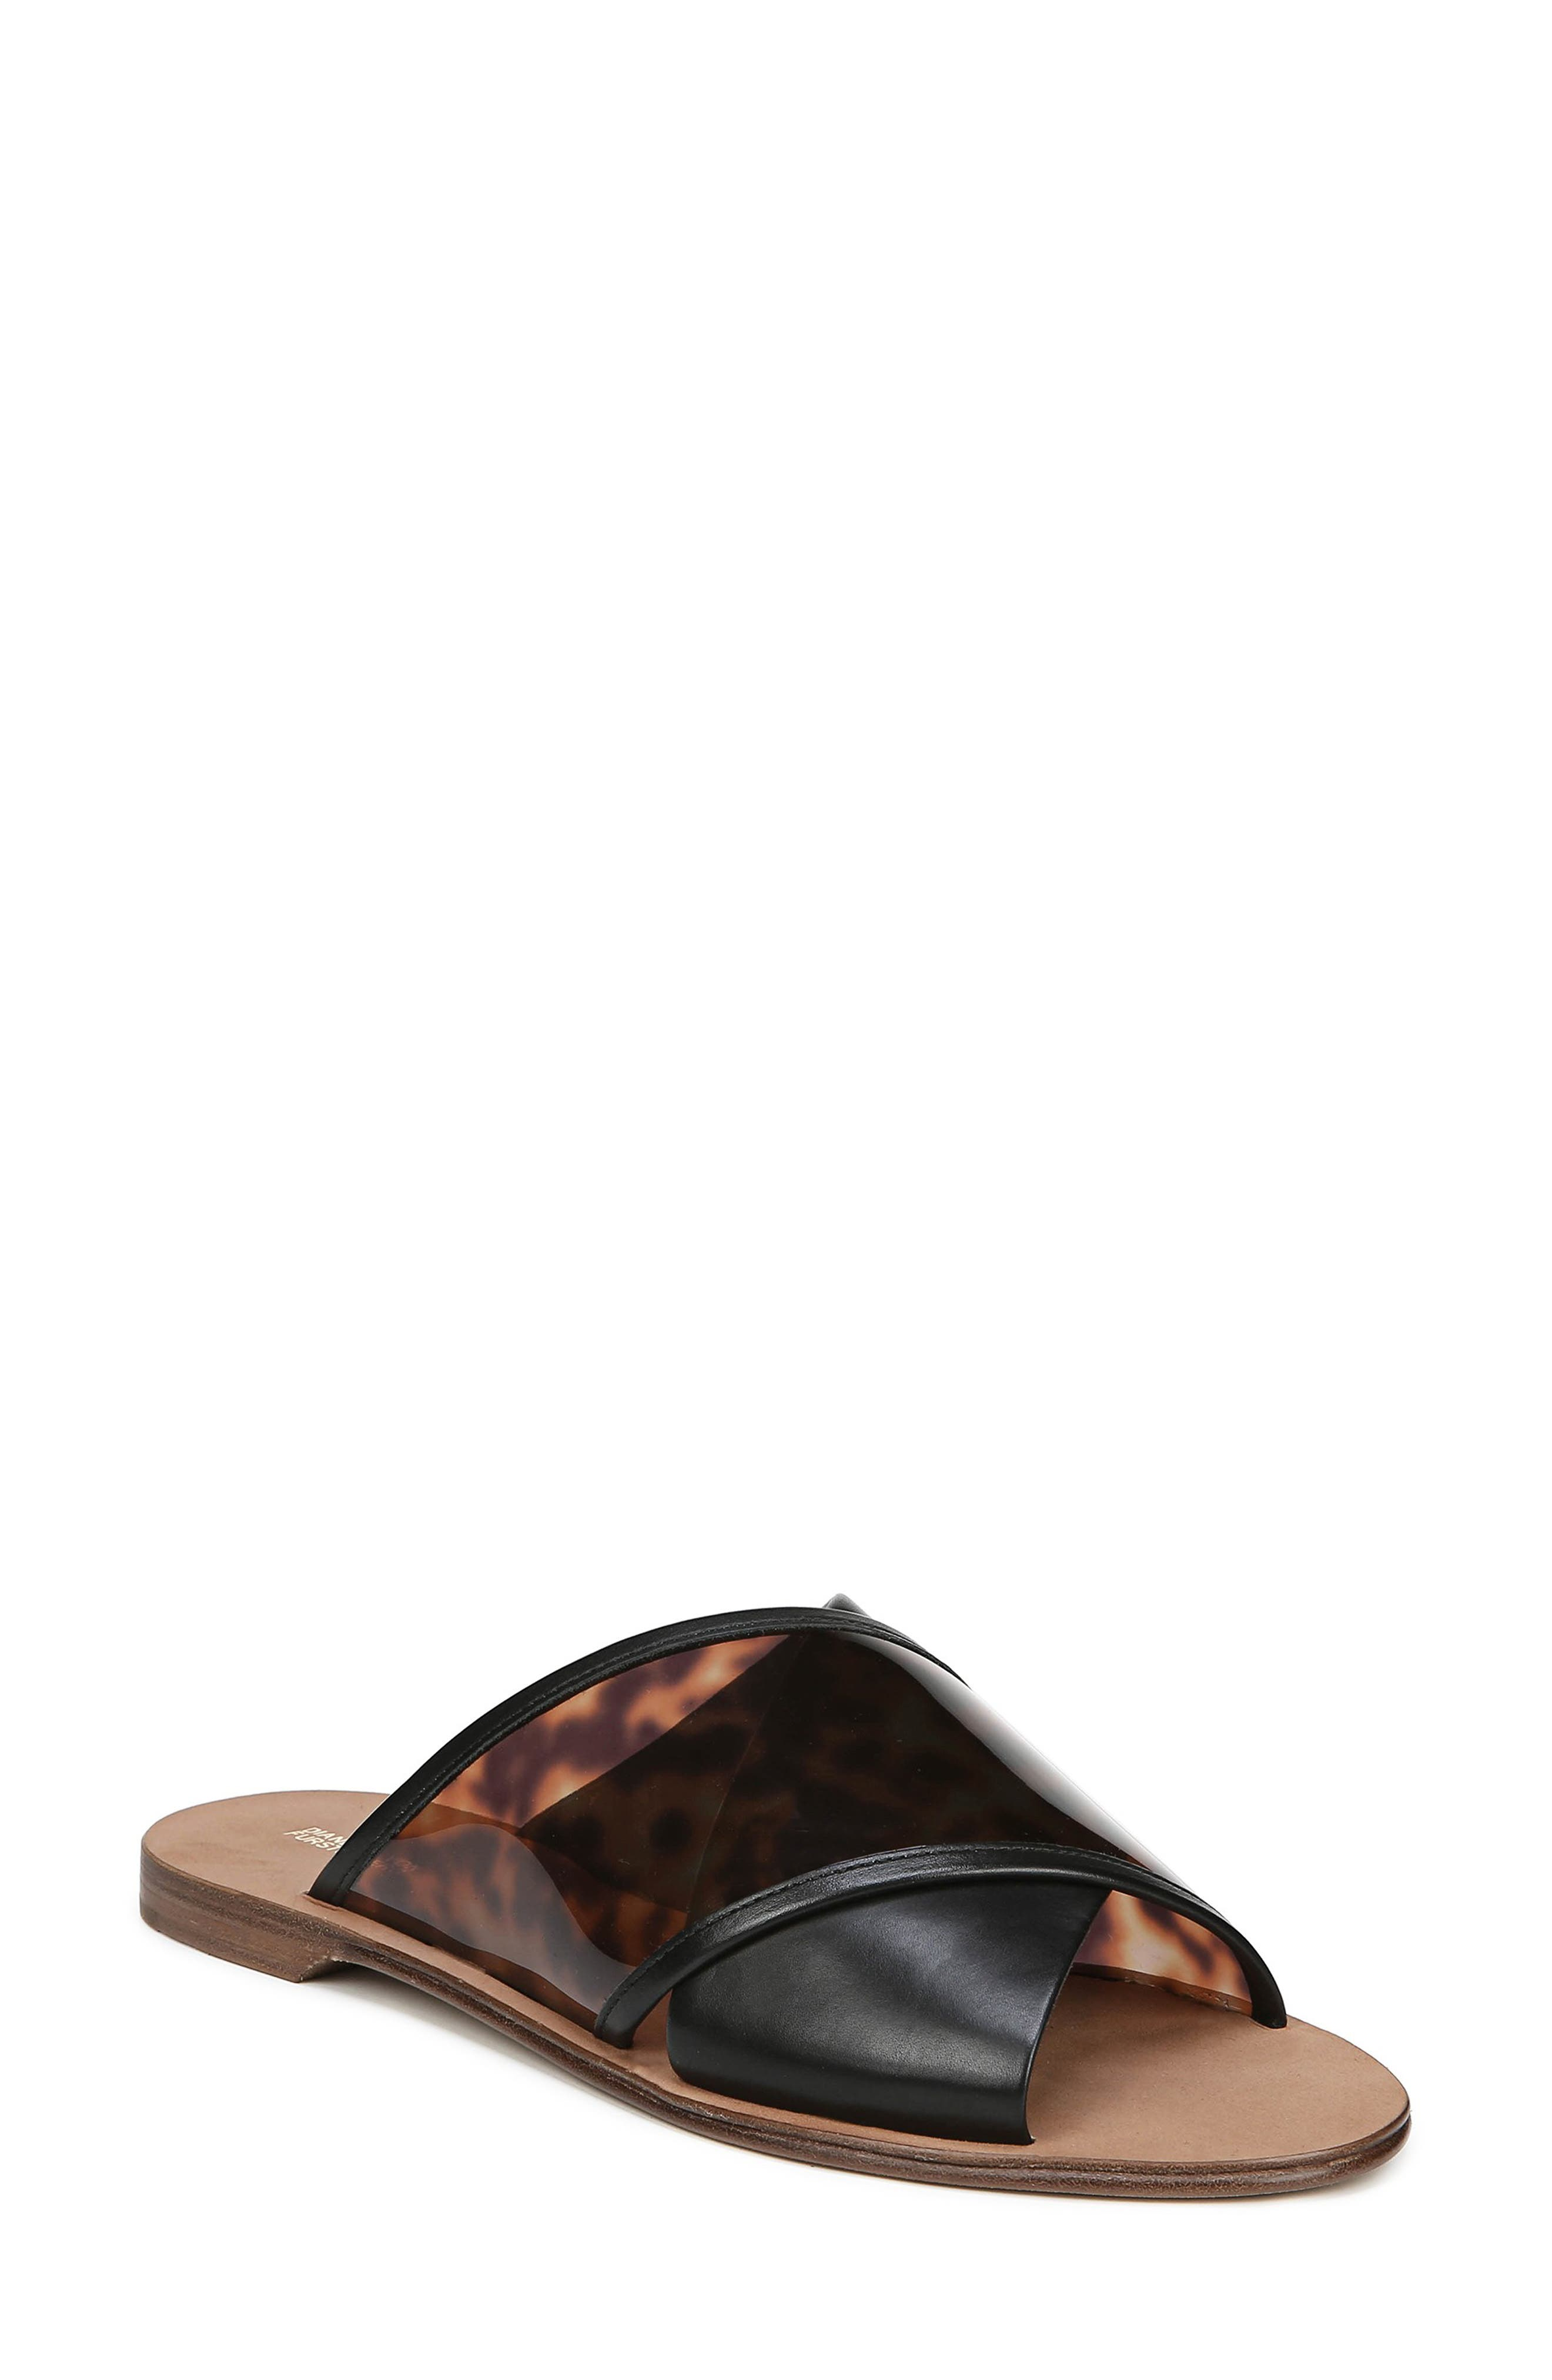 Bailie-4 Crisscross Slide Sandals in Black Multi